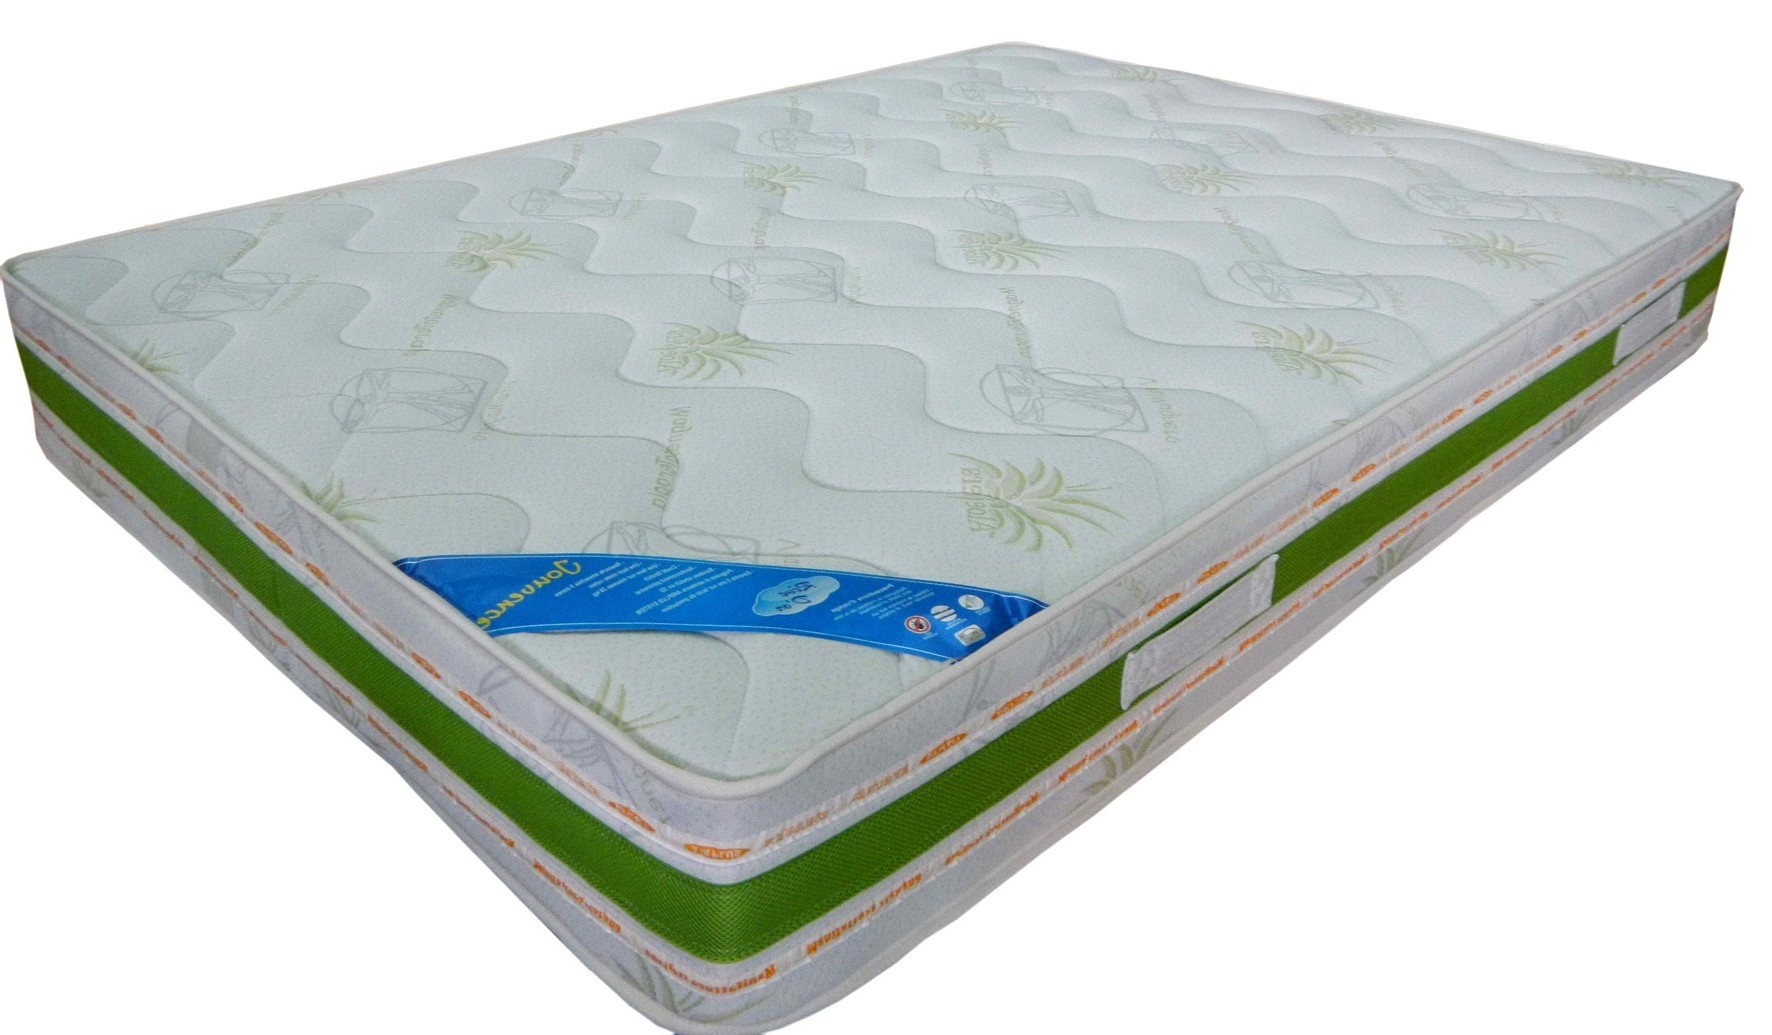 matelas 140x190 cm blanc vert jouvence. Black Bedroom Furniture Sets. Home Design Ideas